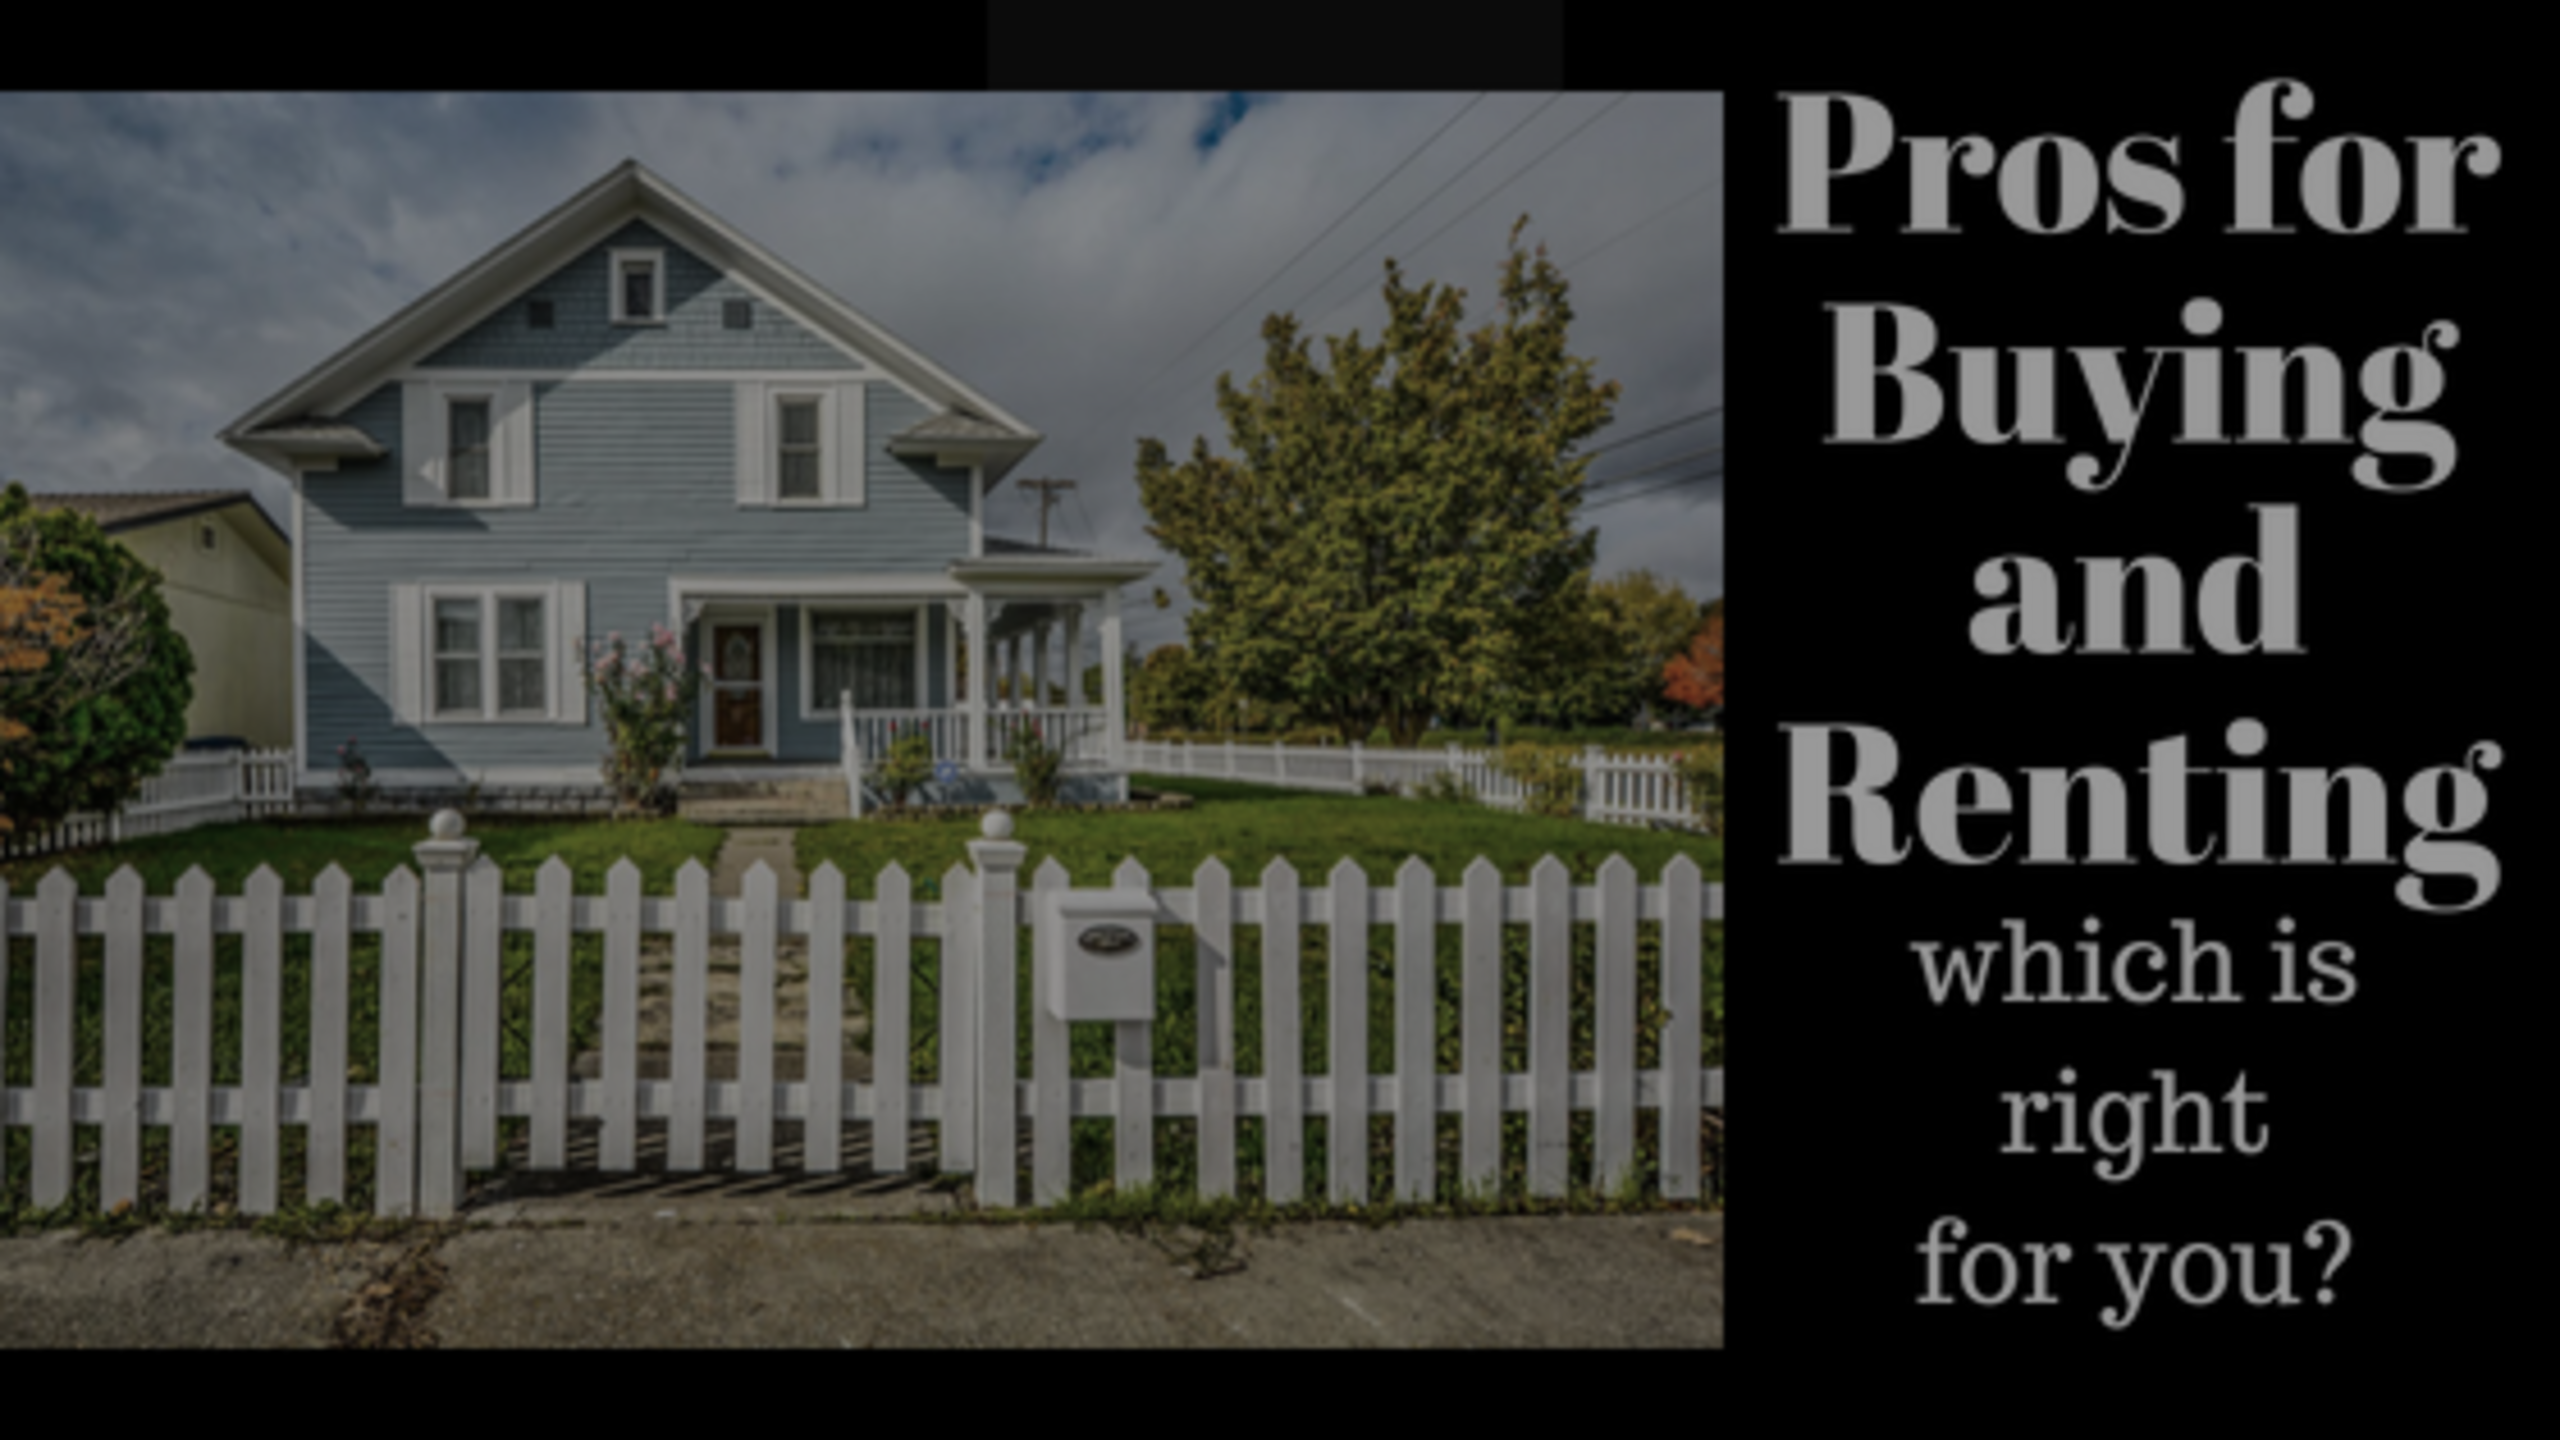 Pros of Buying and Renting